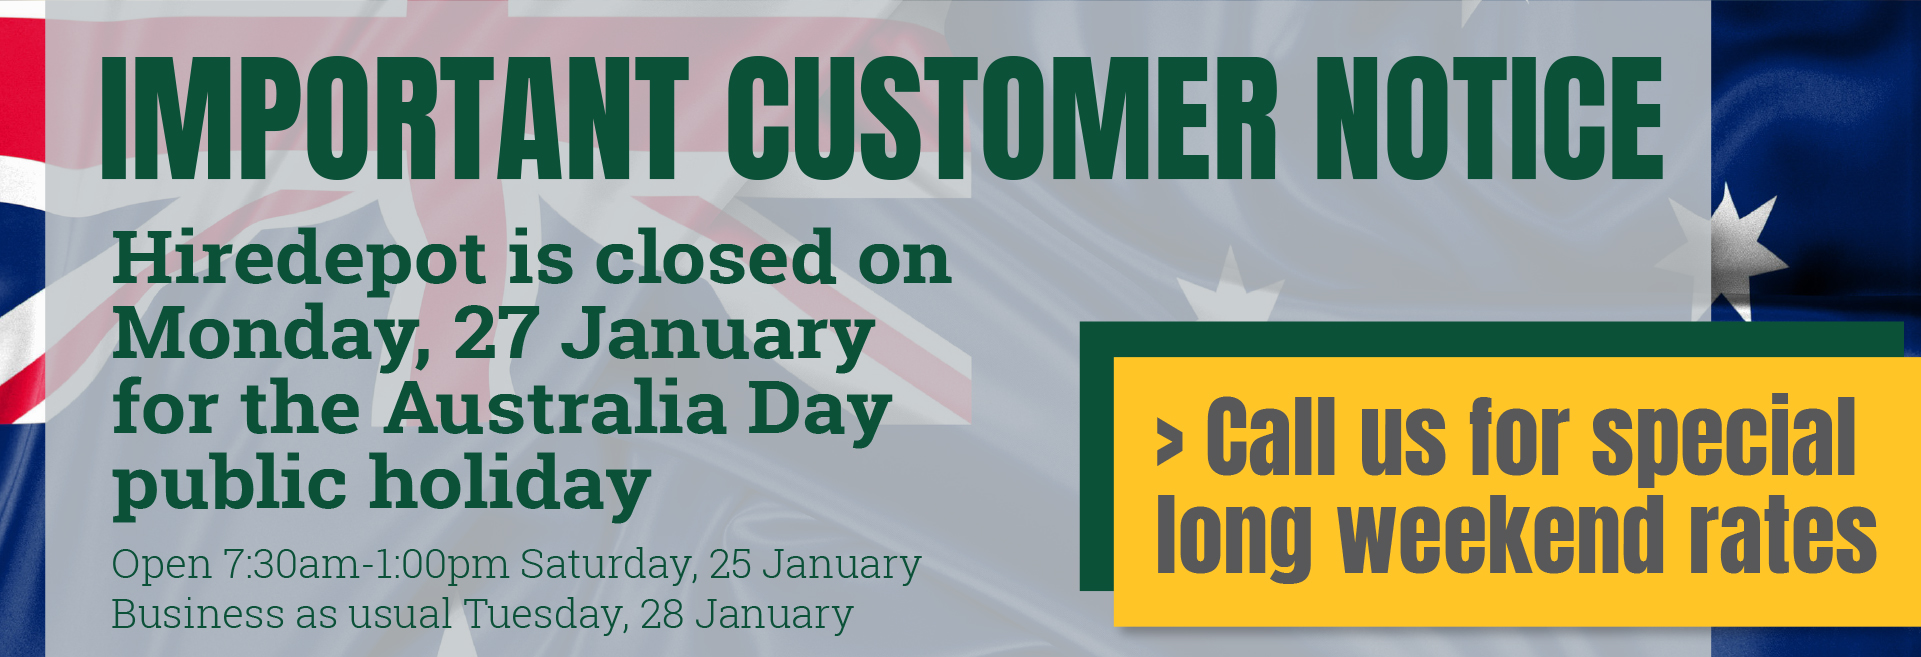 Important customer notice - Australia Day closure